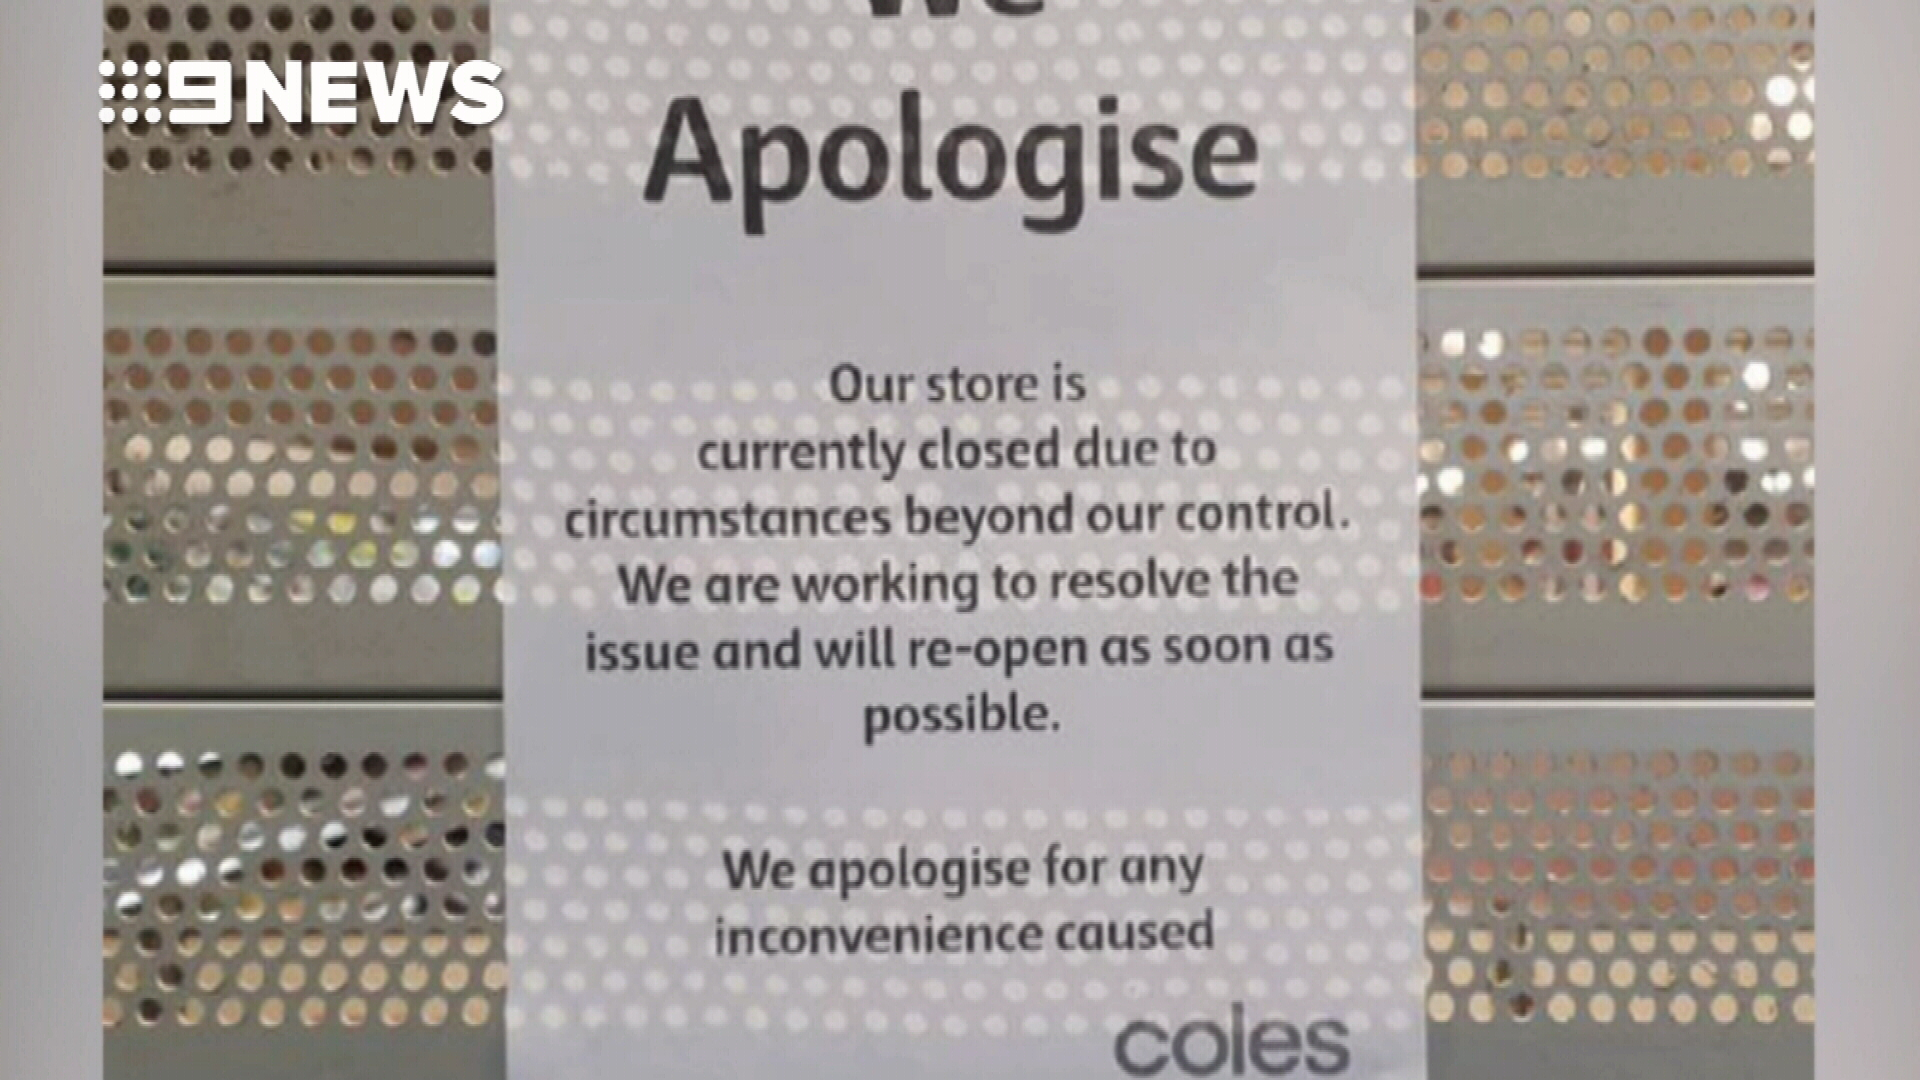 Technical glitch that closed Coles stores has been resolved